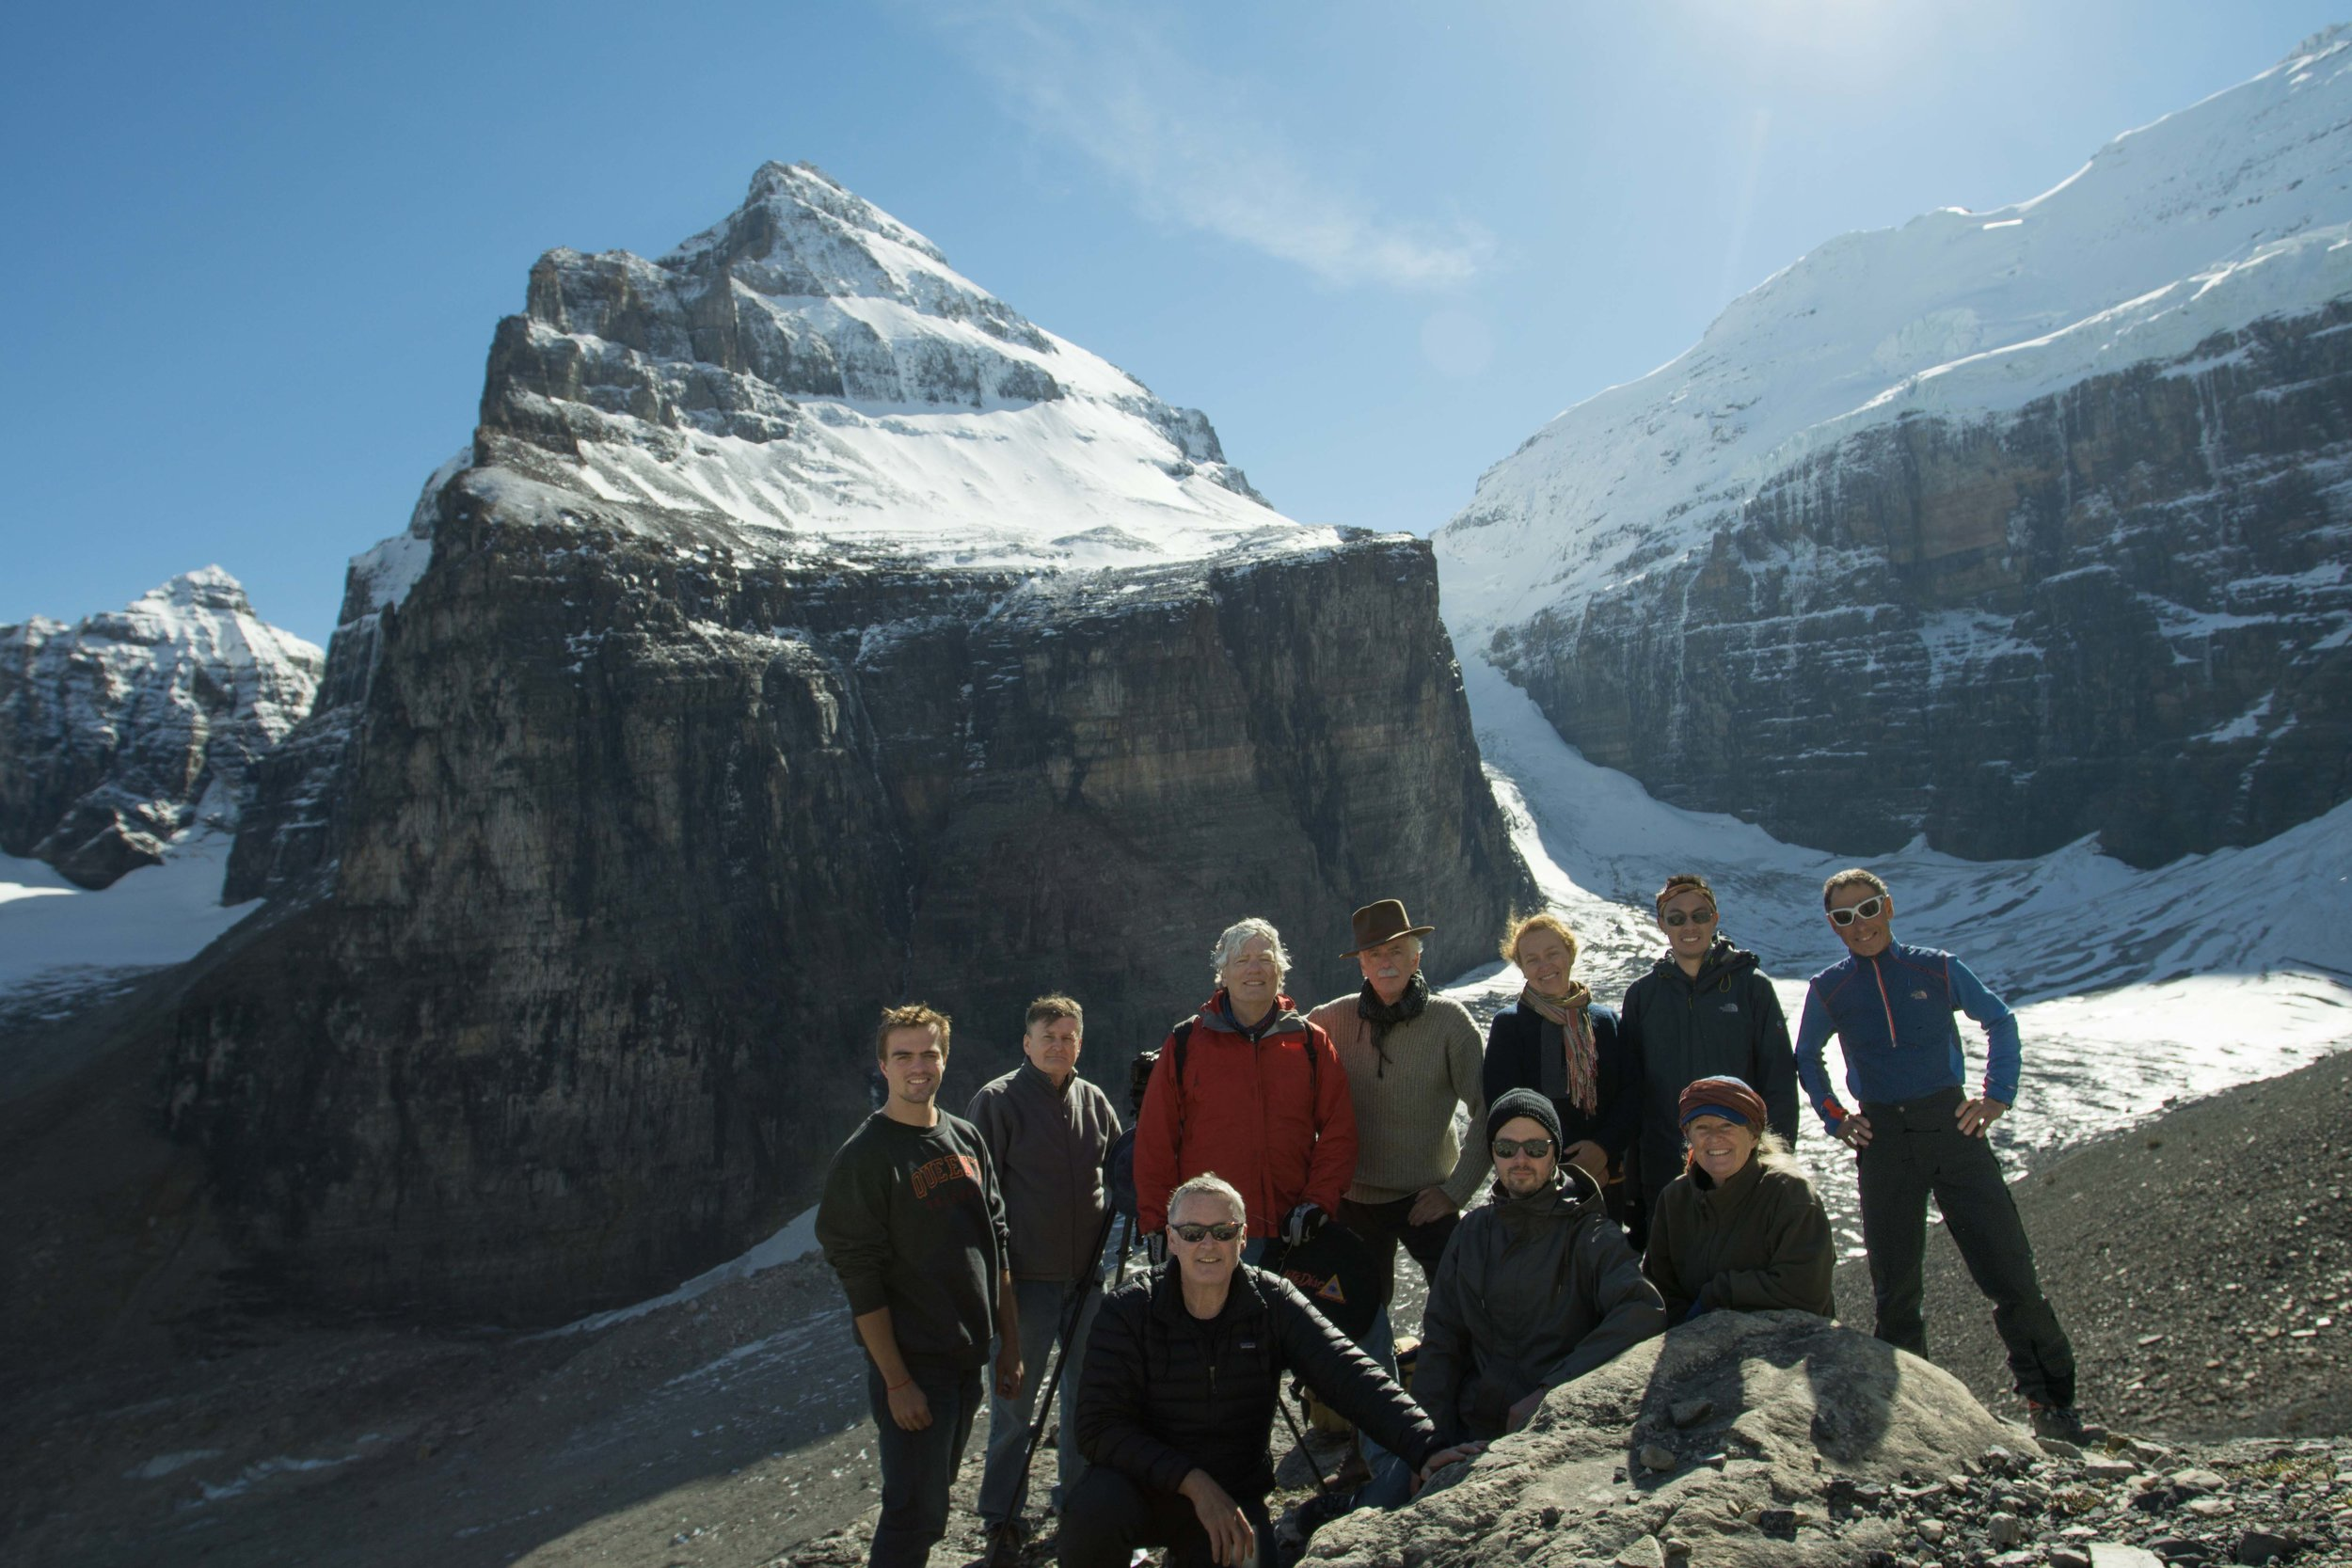 img4_The Crew Across from Mount Lefroy © White Pine Pictures.jpg